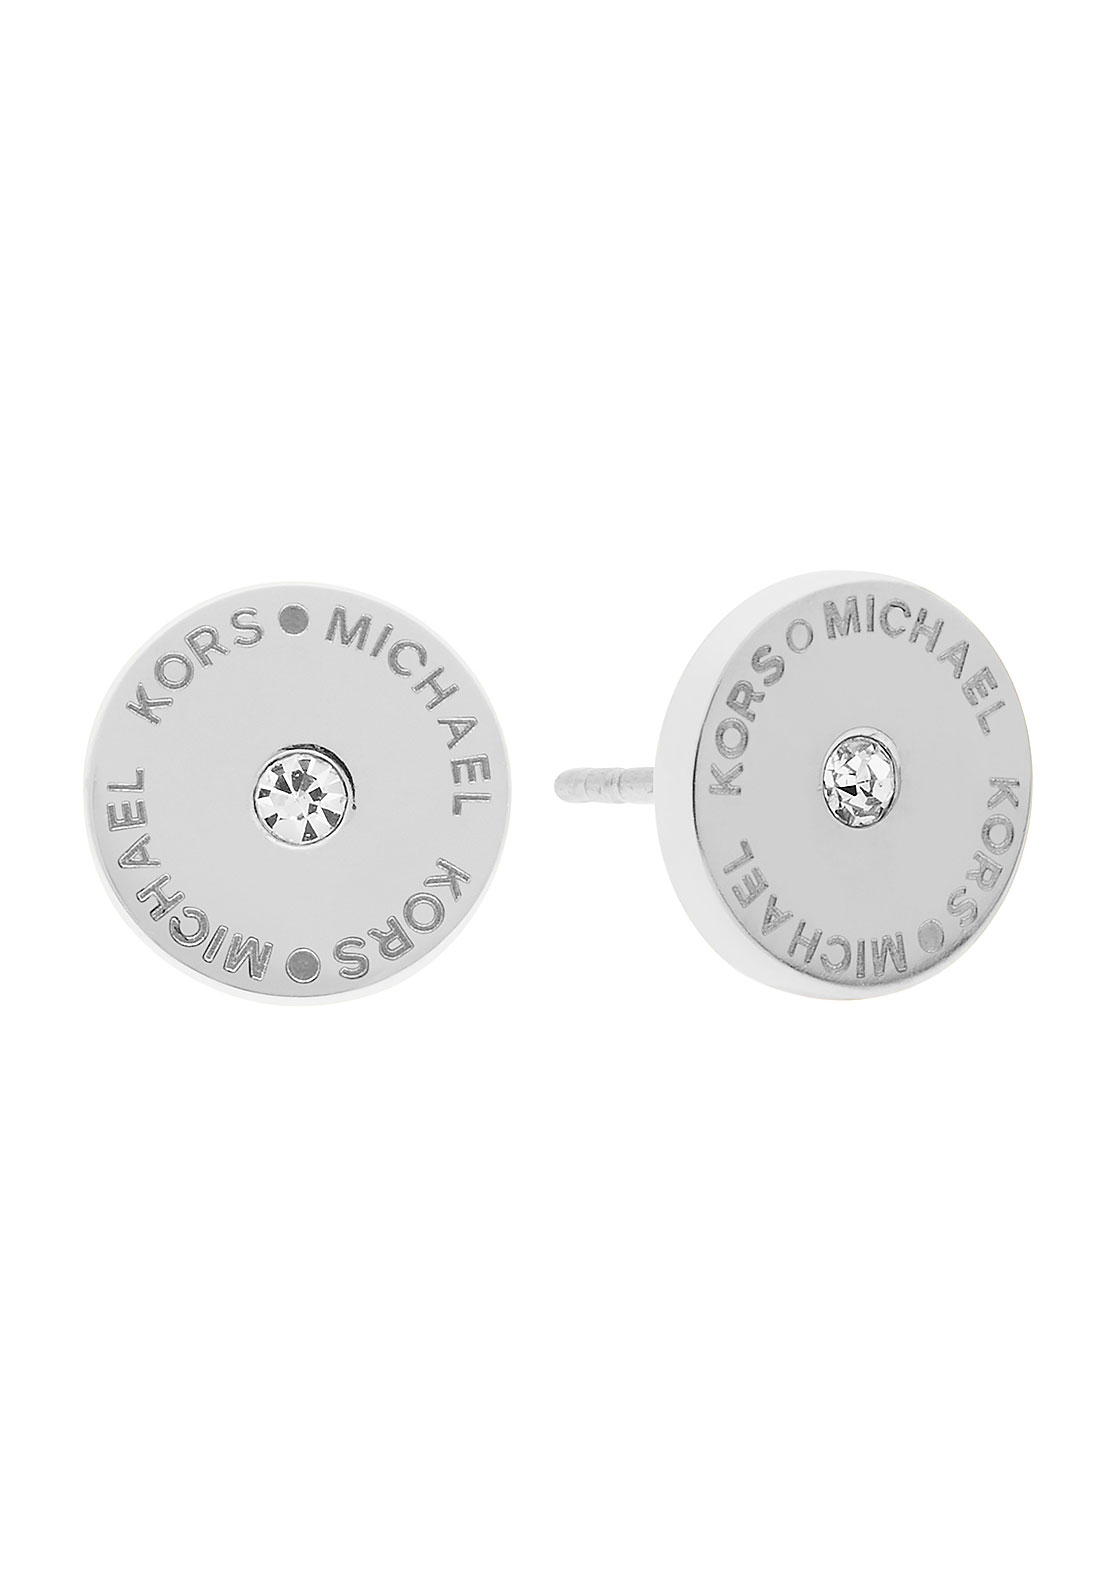 Michael Kors Stainless Steel Logo Stud Earrings, Sliver